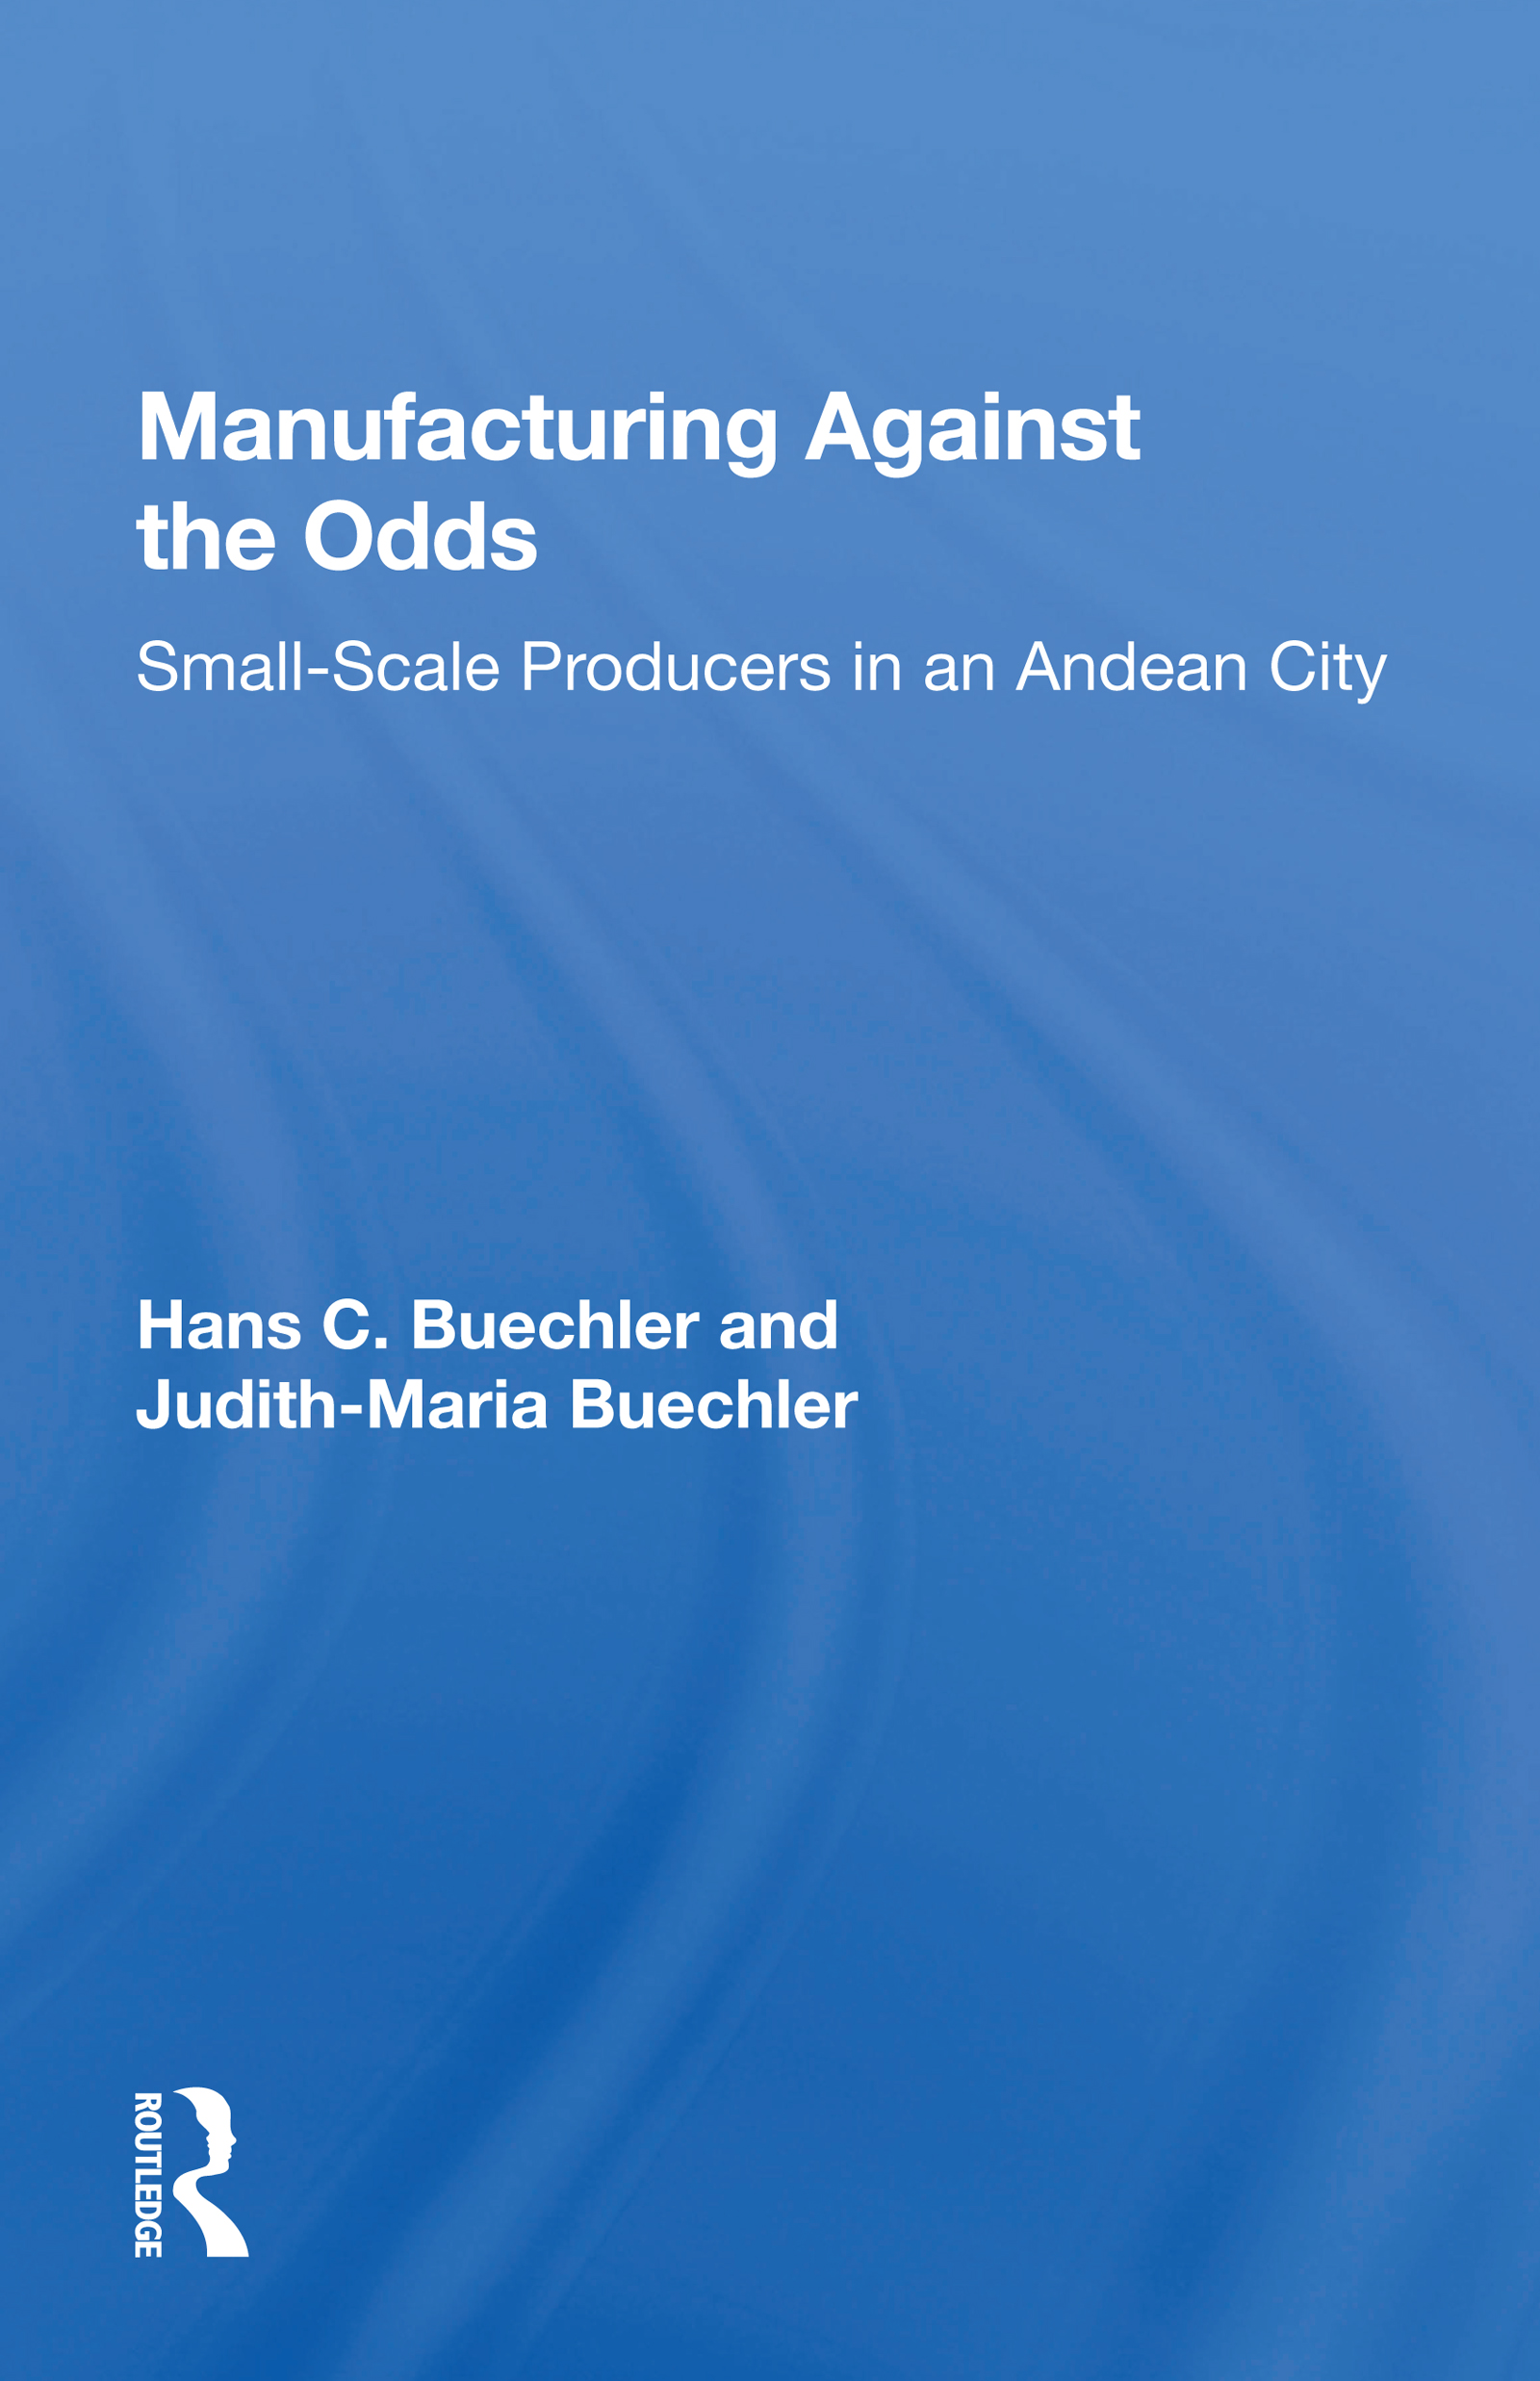 Manufacturing Against the Odds